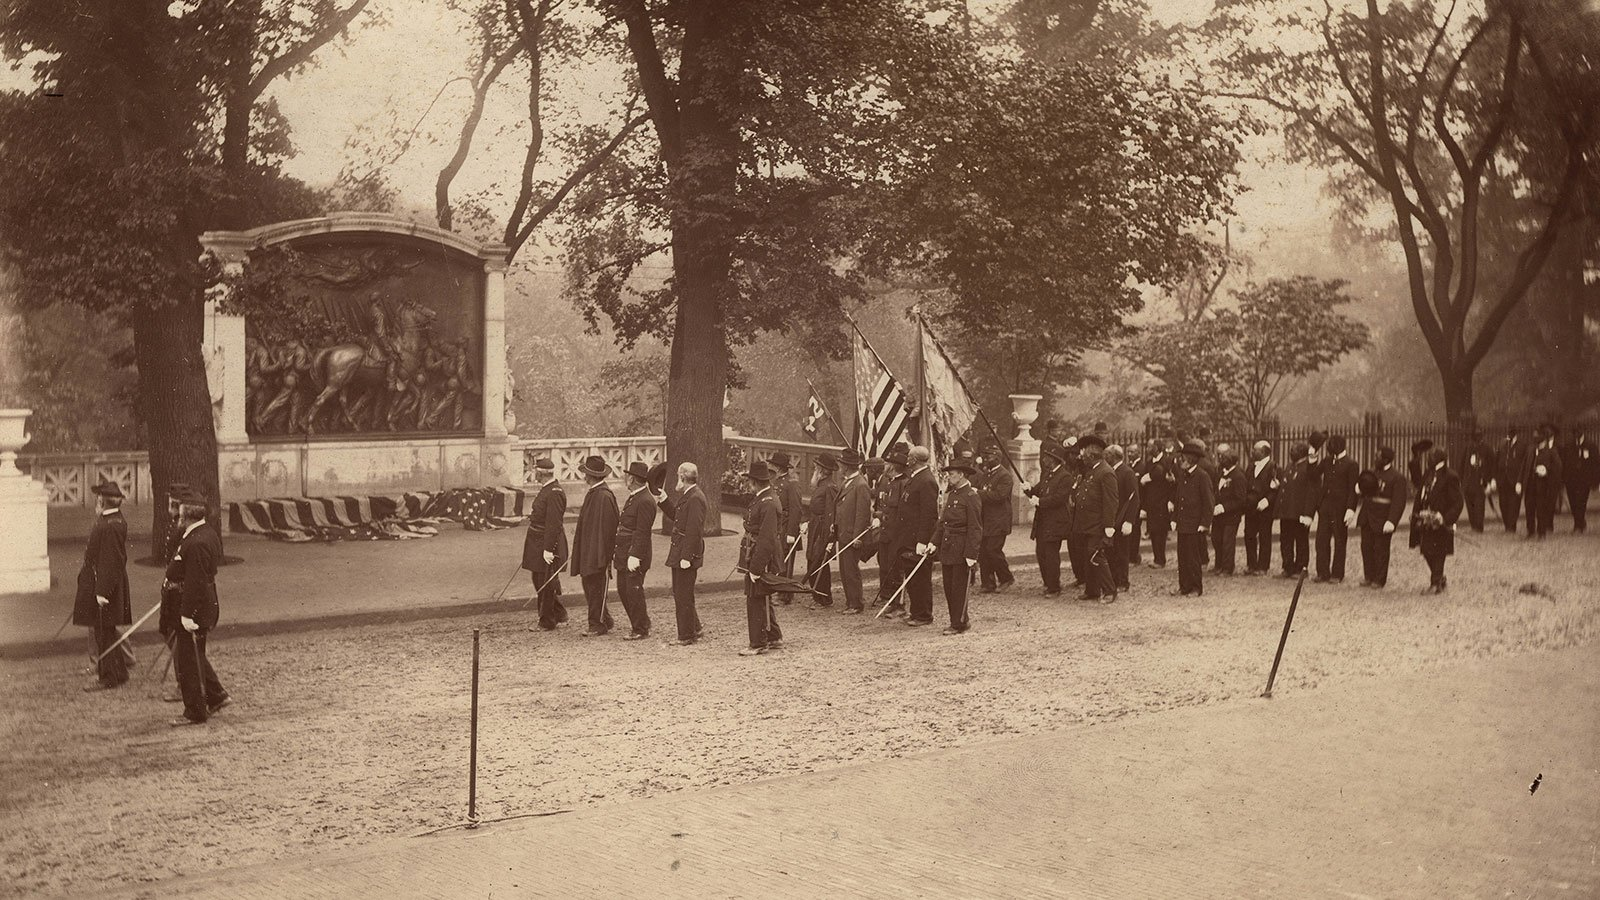 Dedication of the Memorial to Robert Gould Shaw and the Fifty-fourth Massachusetts Regiment